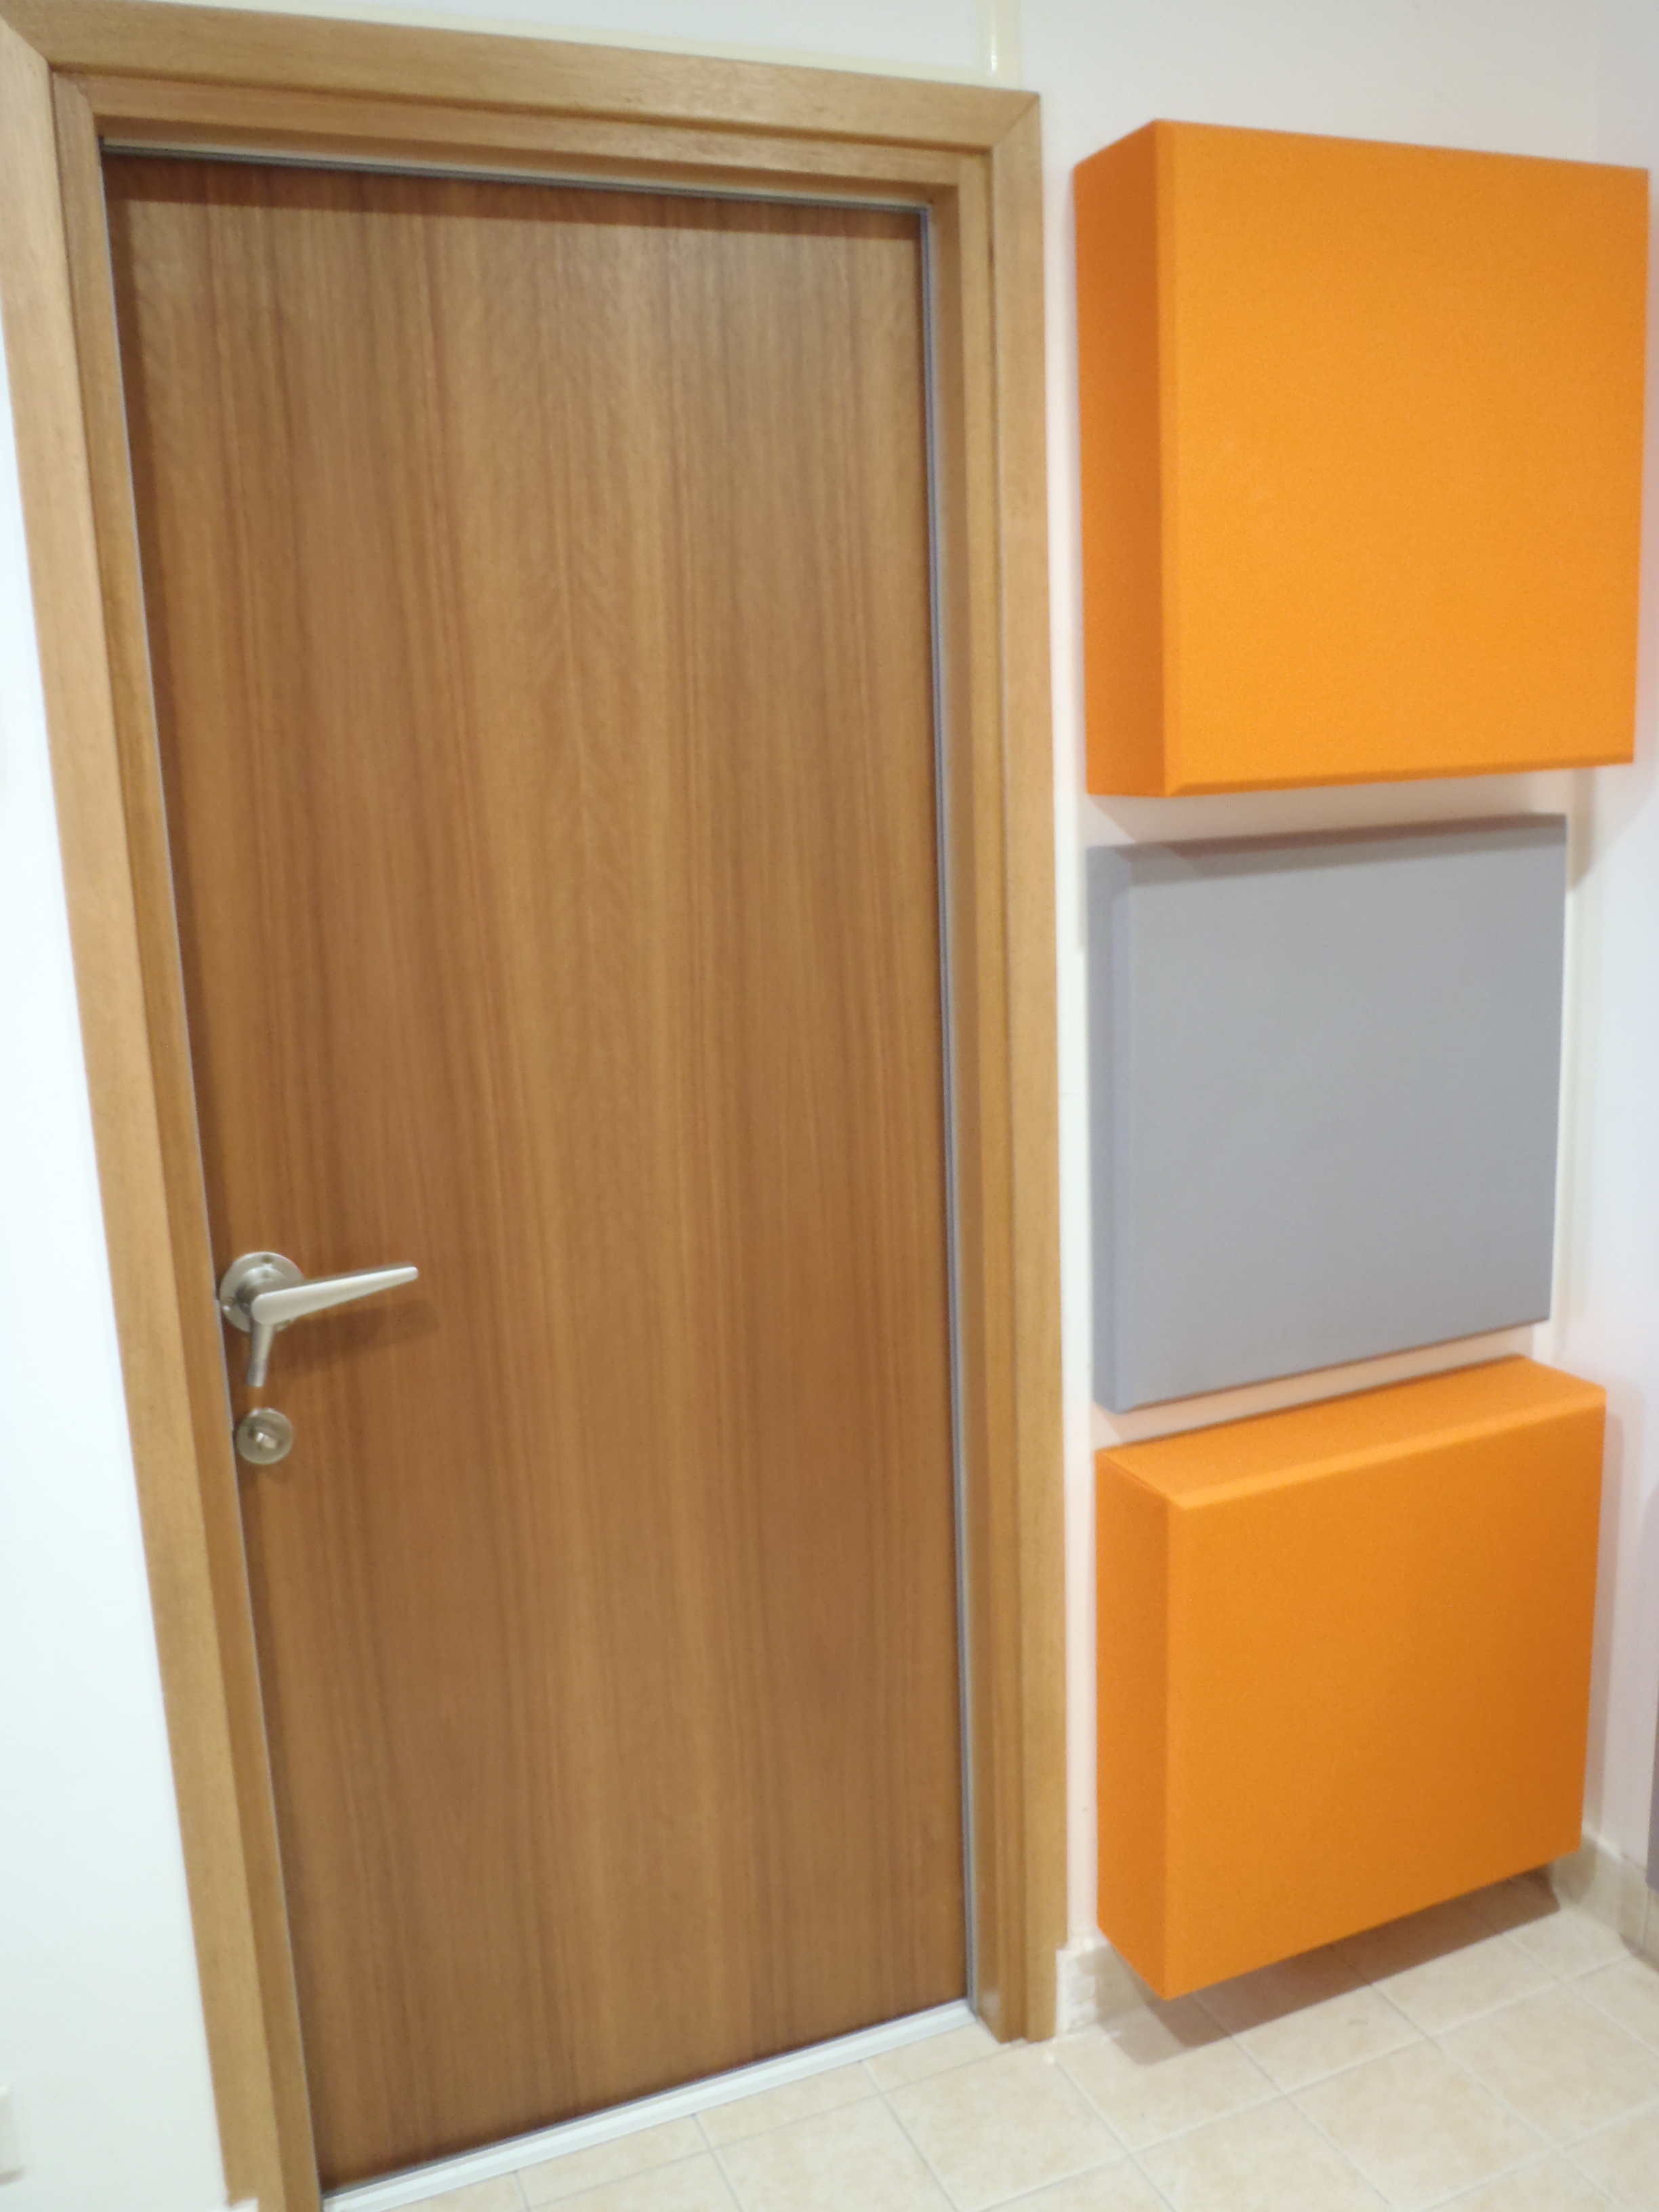 Soundproof apartment door